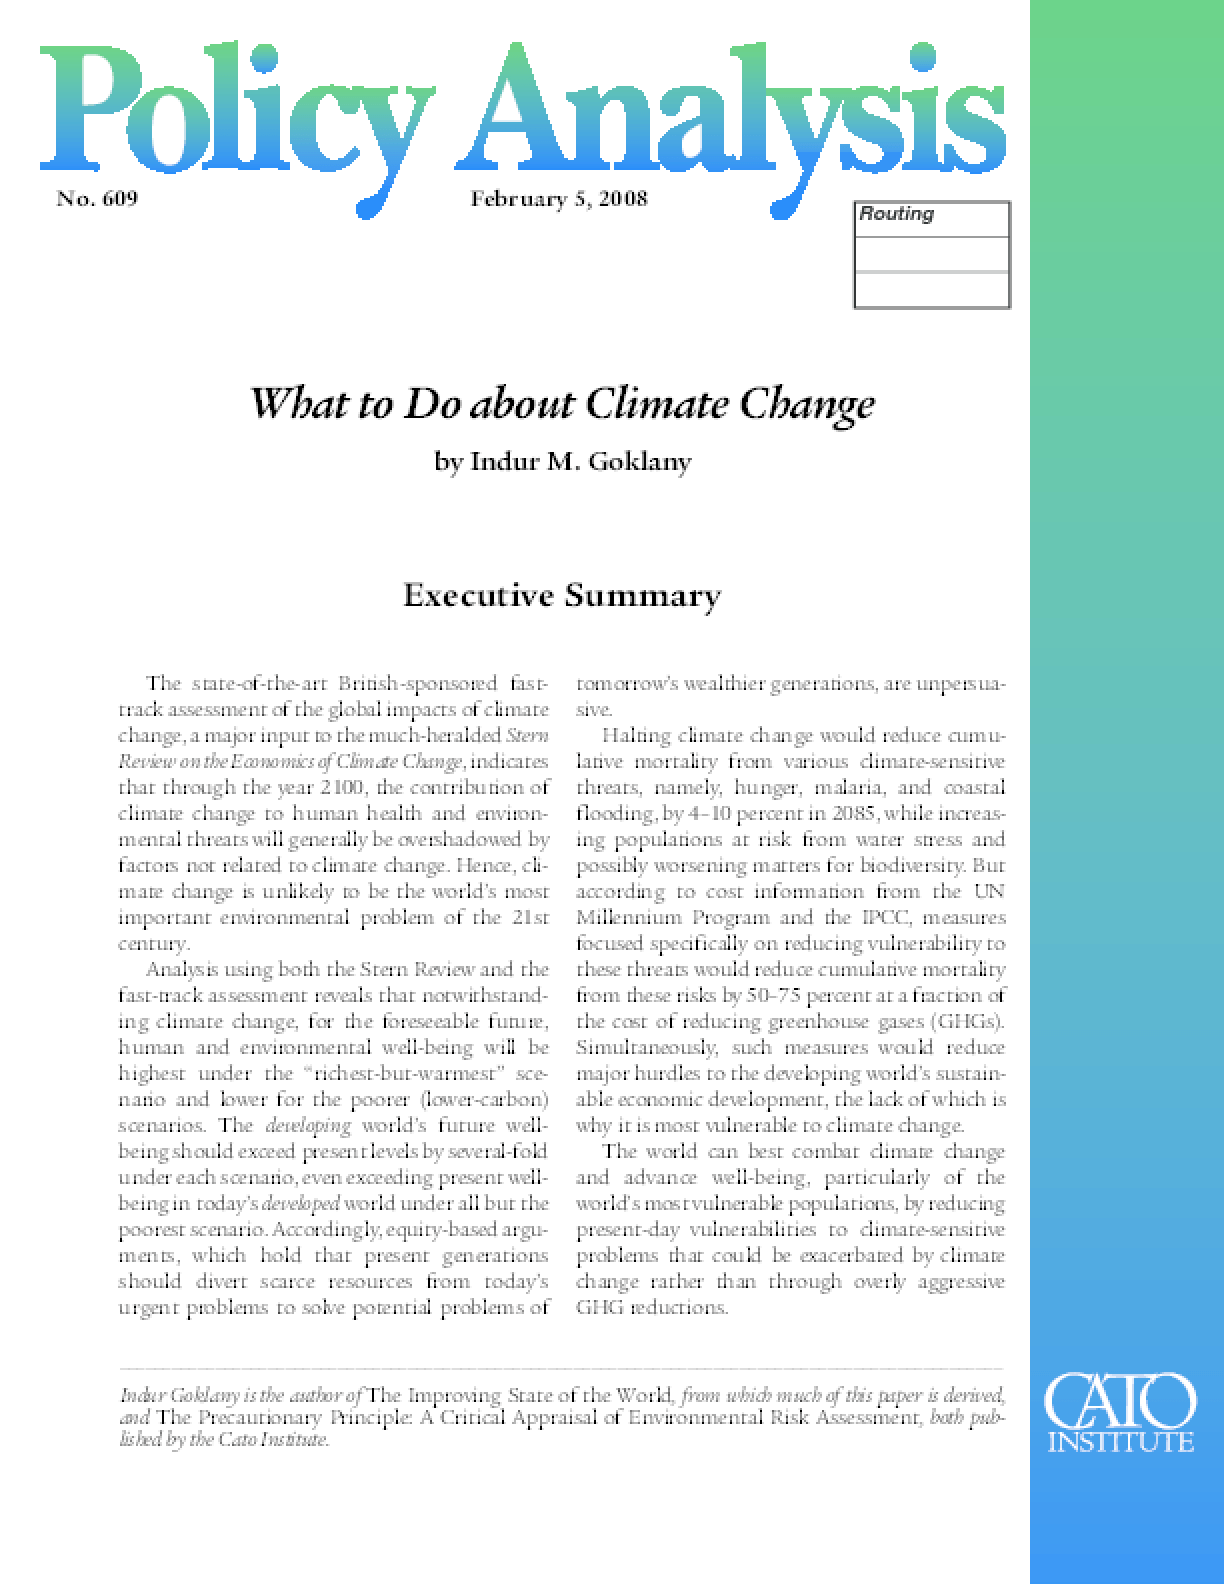 What to Do about Climate Change